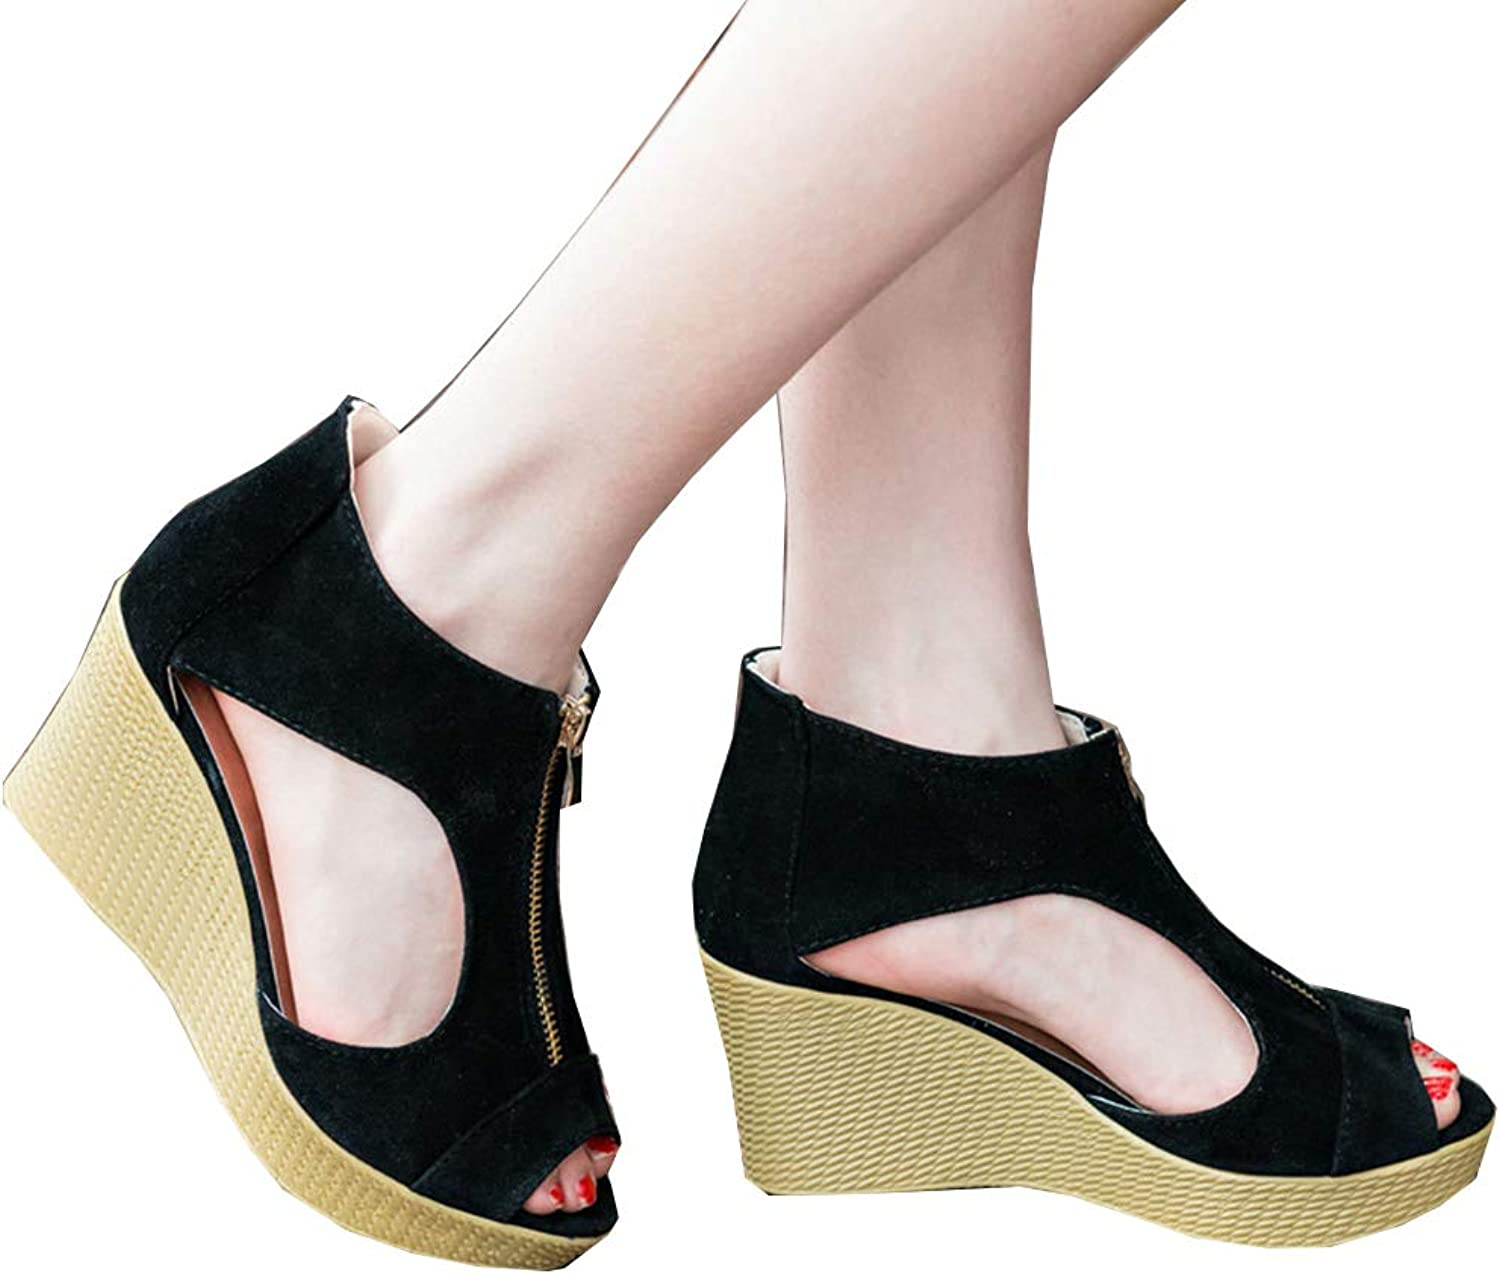 Women shoes Summer Platform Wedges Vintage High Heels Open Toe with Zippers Beach Breathable Slippers Plus Size 35-38